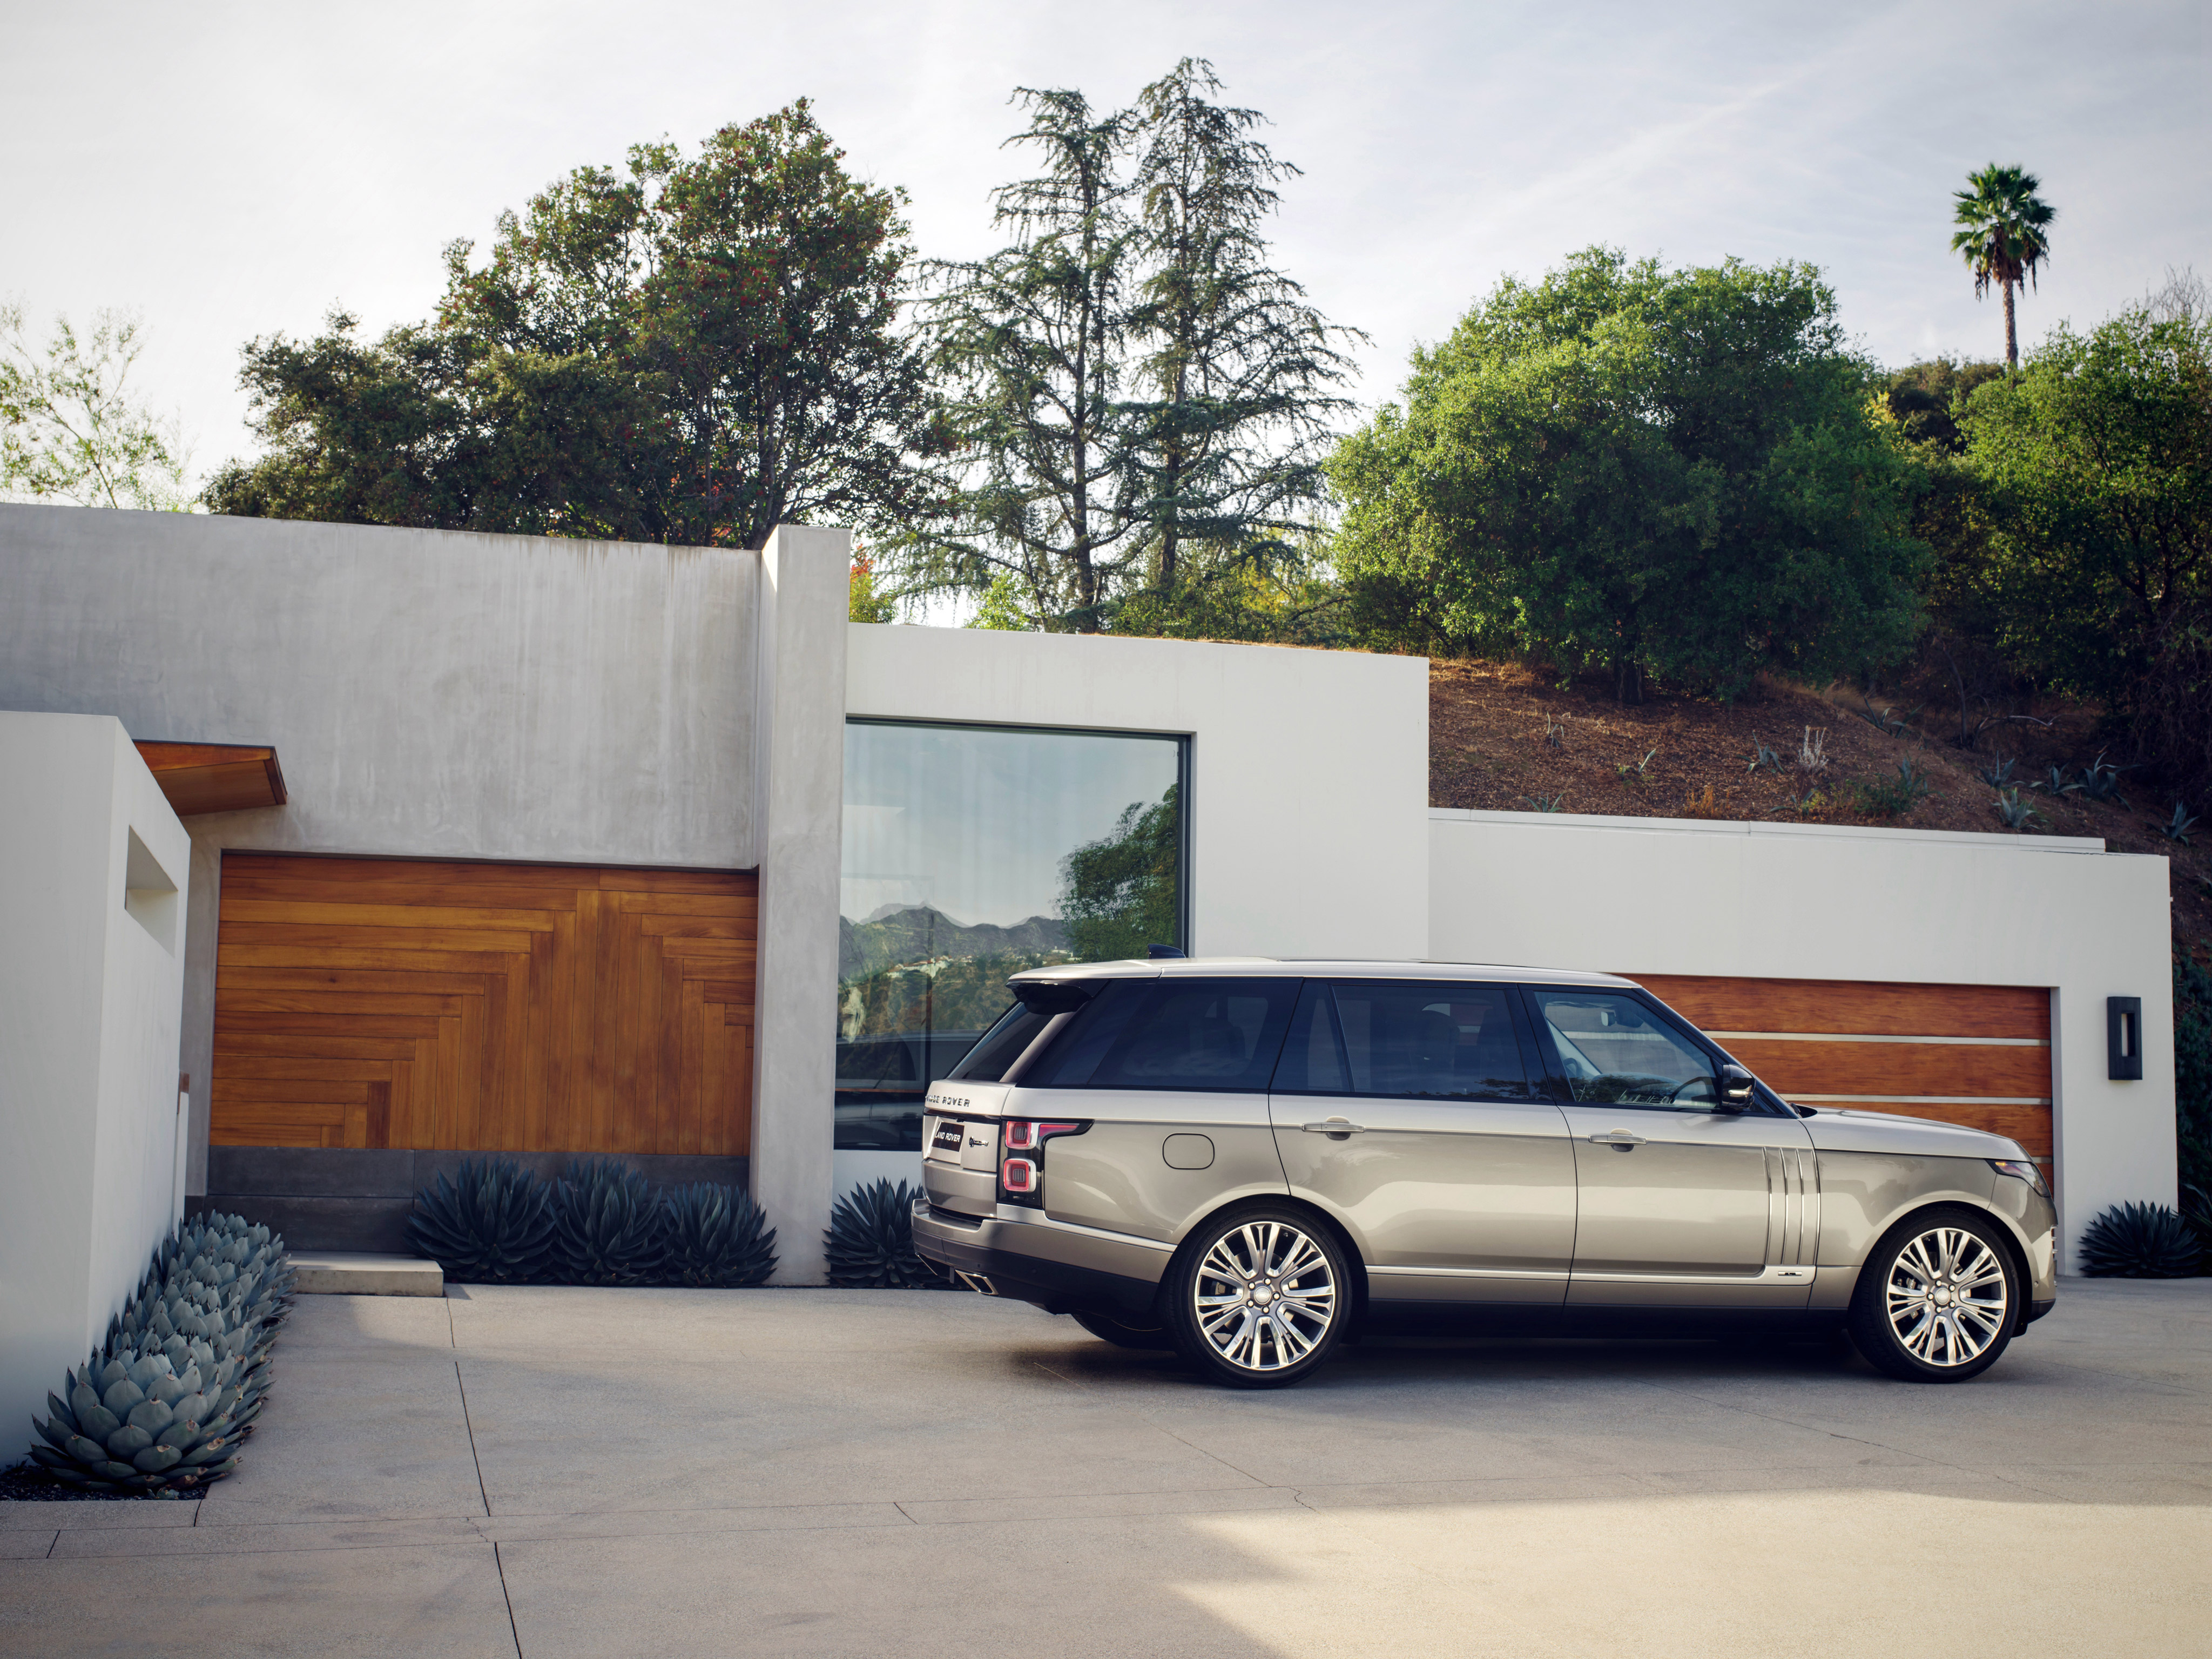 1920x1080 range rover svautobiography 2018 4k laptop full hd 1080p hd 4k wallpapers images. Black Bedroom Furniture Sets. Home Design Ideas